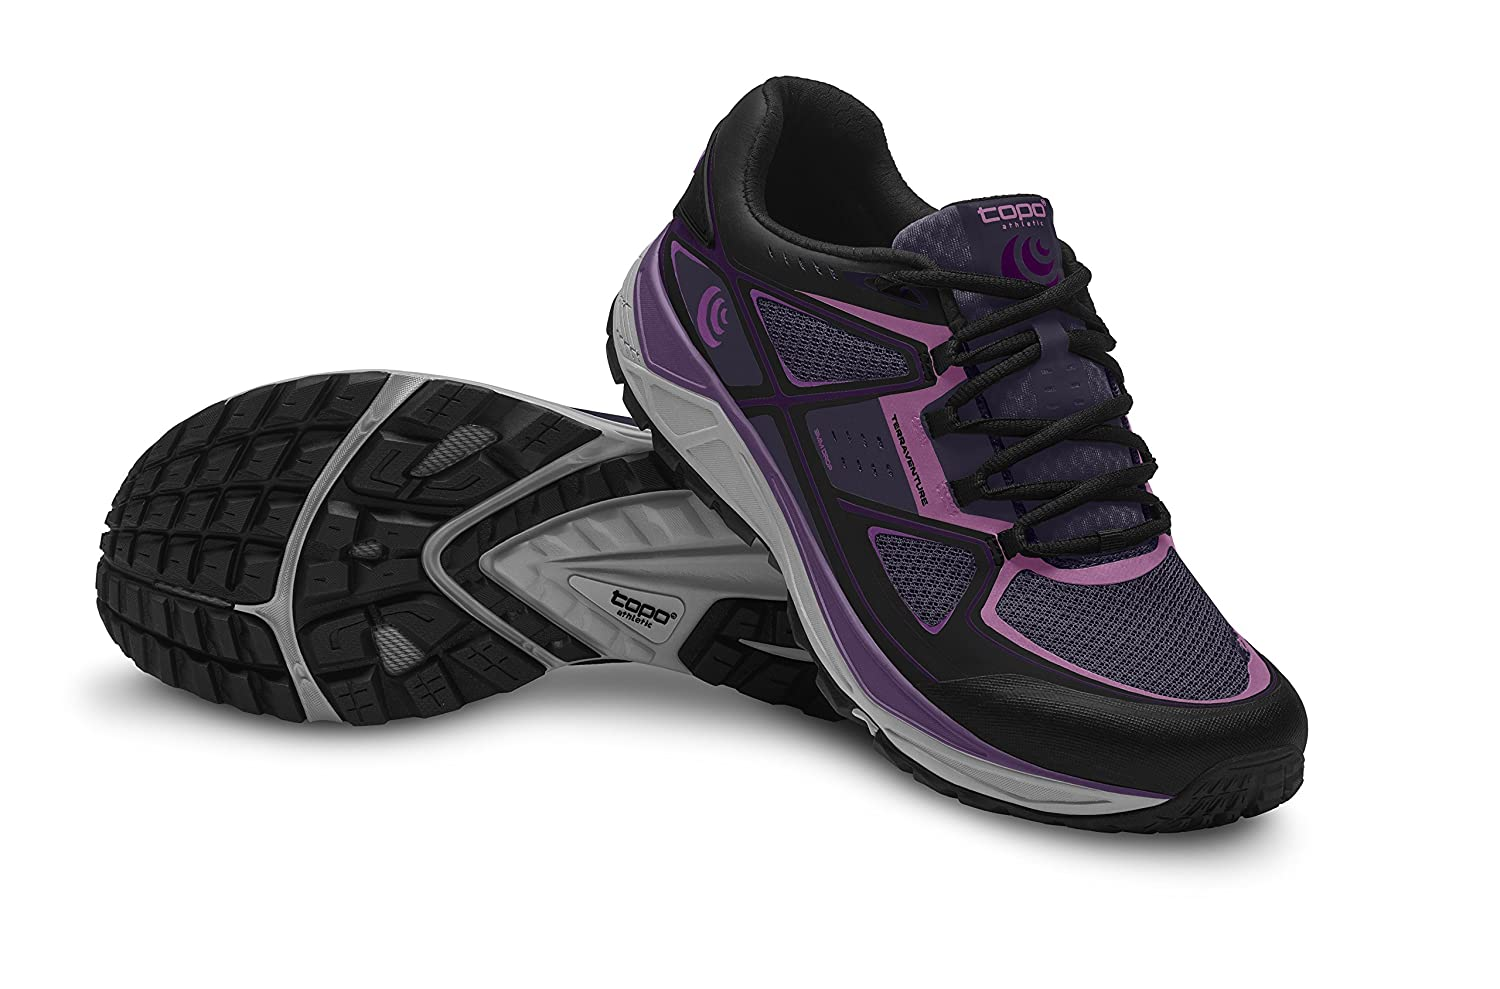 Topo Athletic Terraventure Running Shoe - Women's B01LZ0LZR1 8.5 B(M) US|Purple/Black